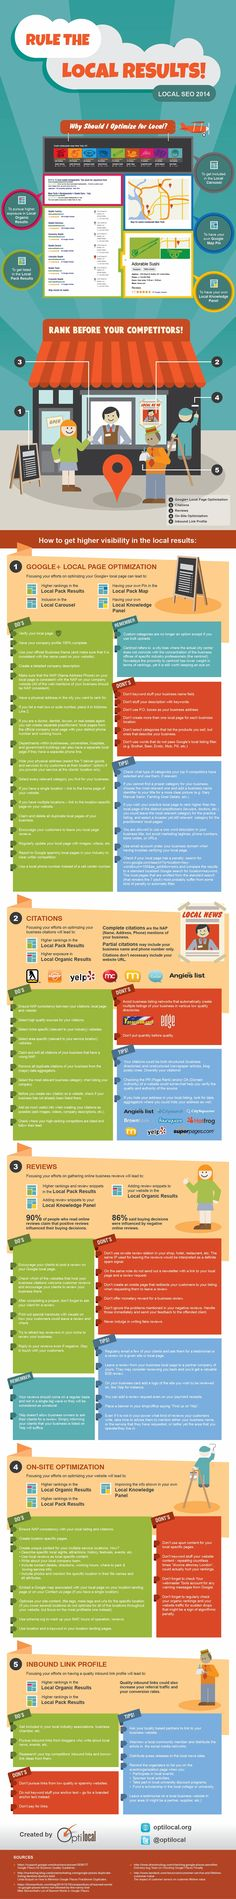 Local SEO Tip Infographic